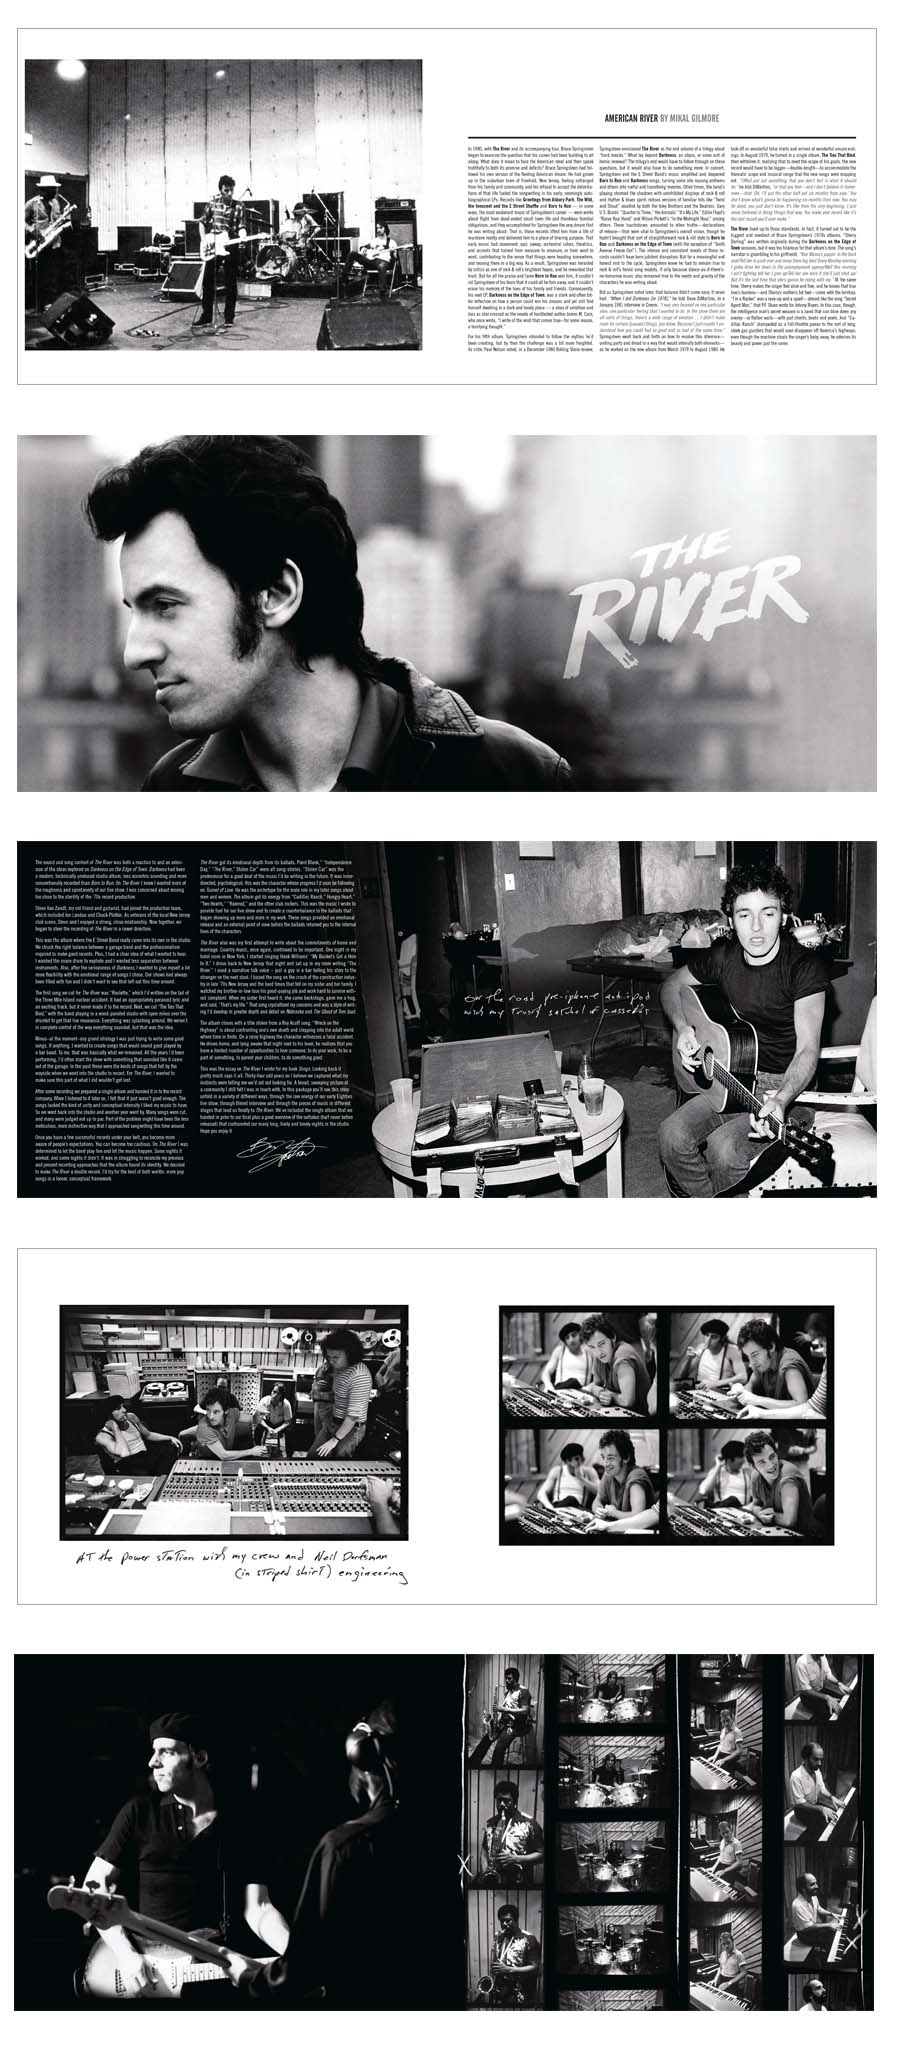 Sample spreads from book